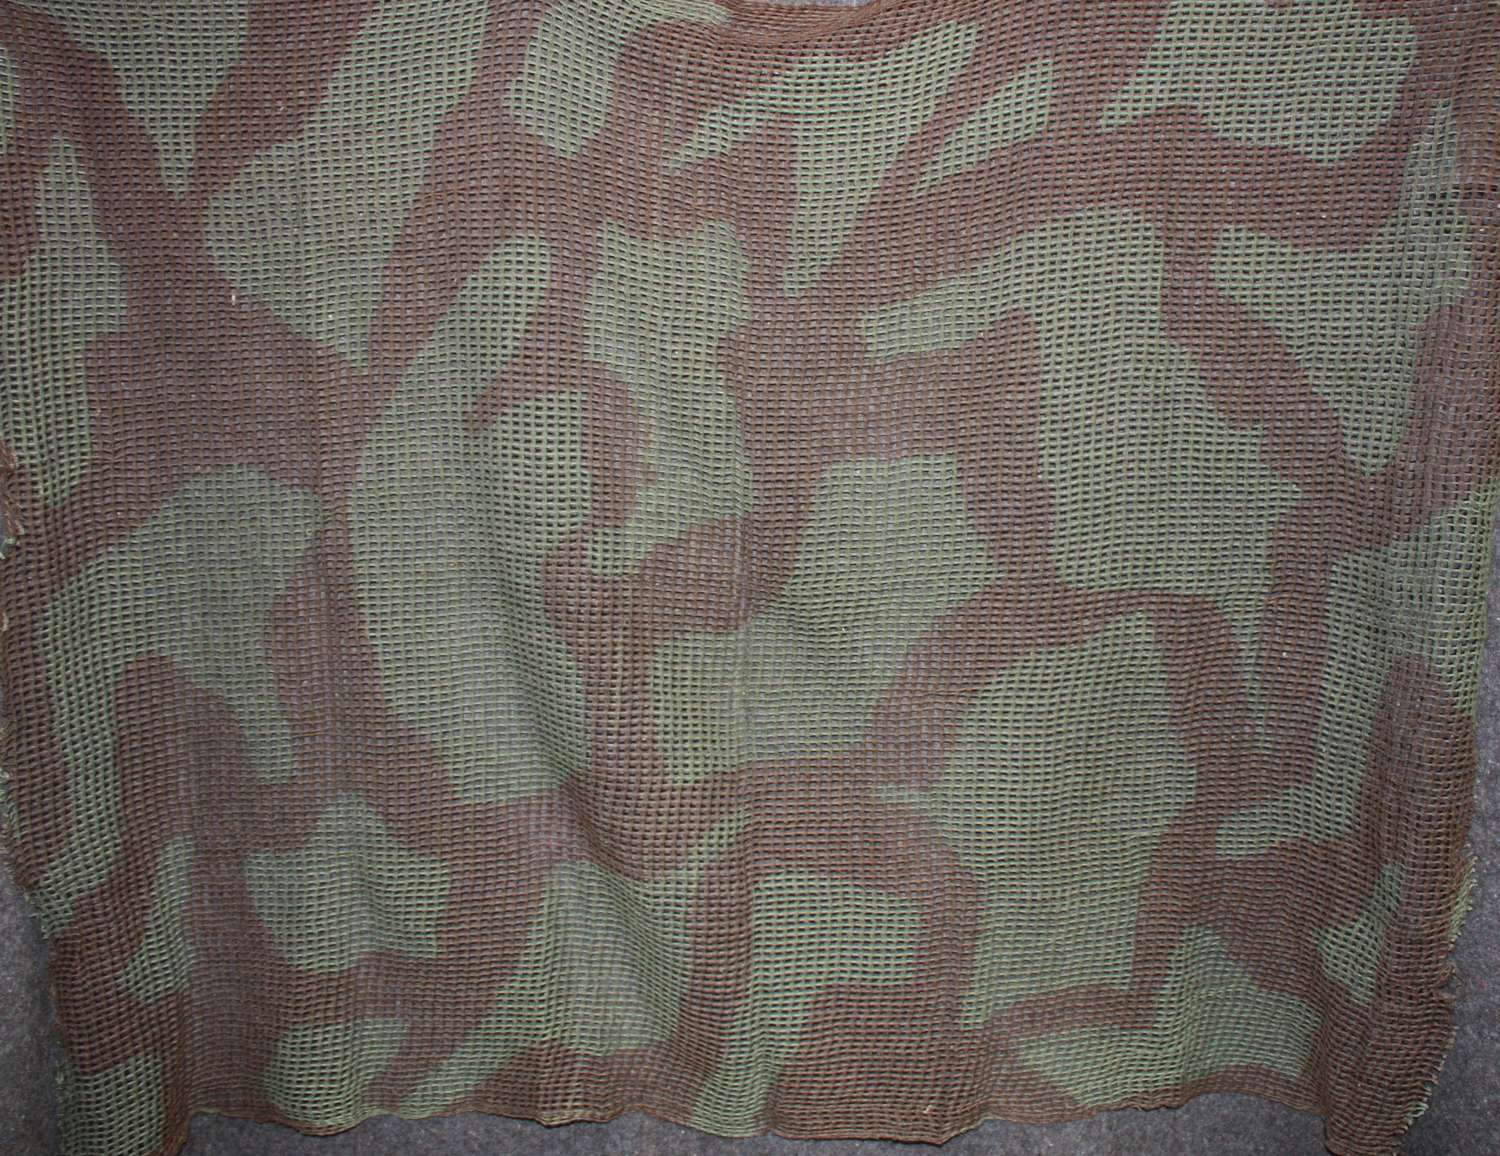 A WWII CAMOUFLAGE SCARF AS USED BY AIRBORNE TROOPS